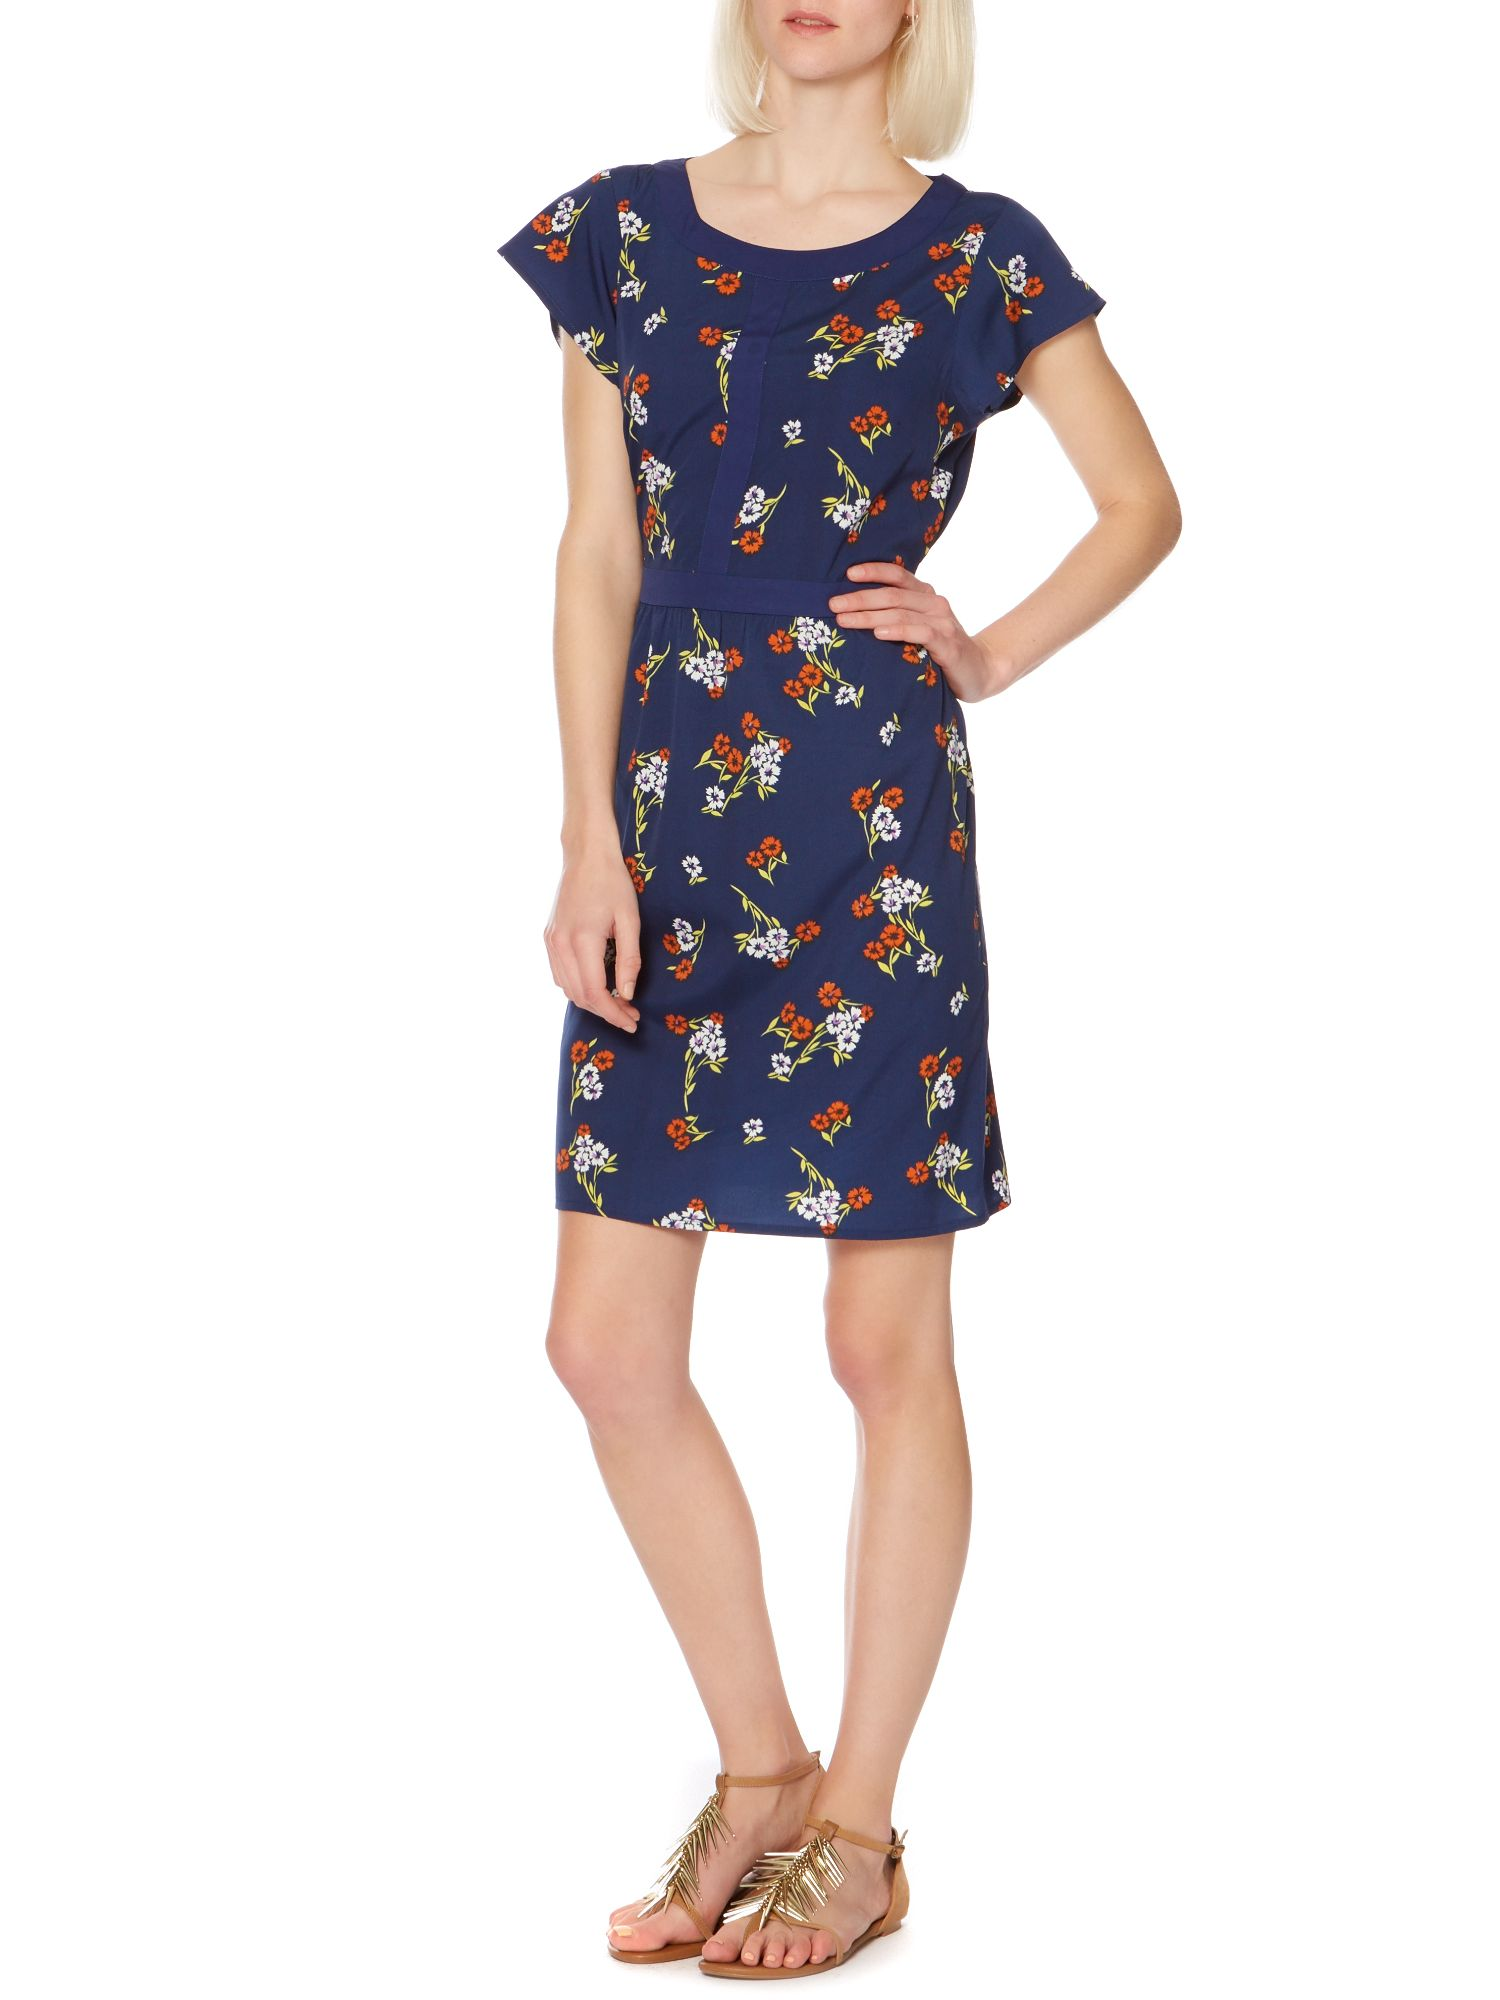 Keyhole small floral print dress